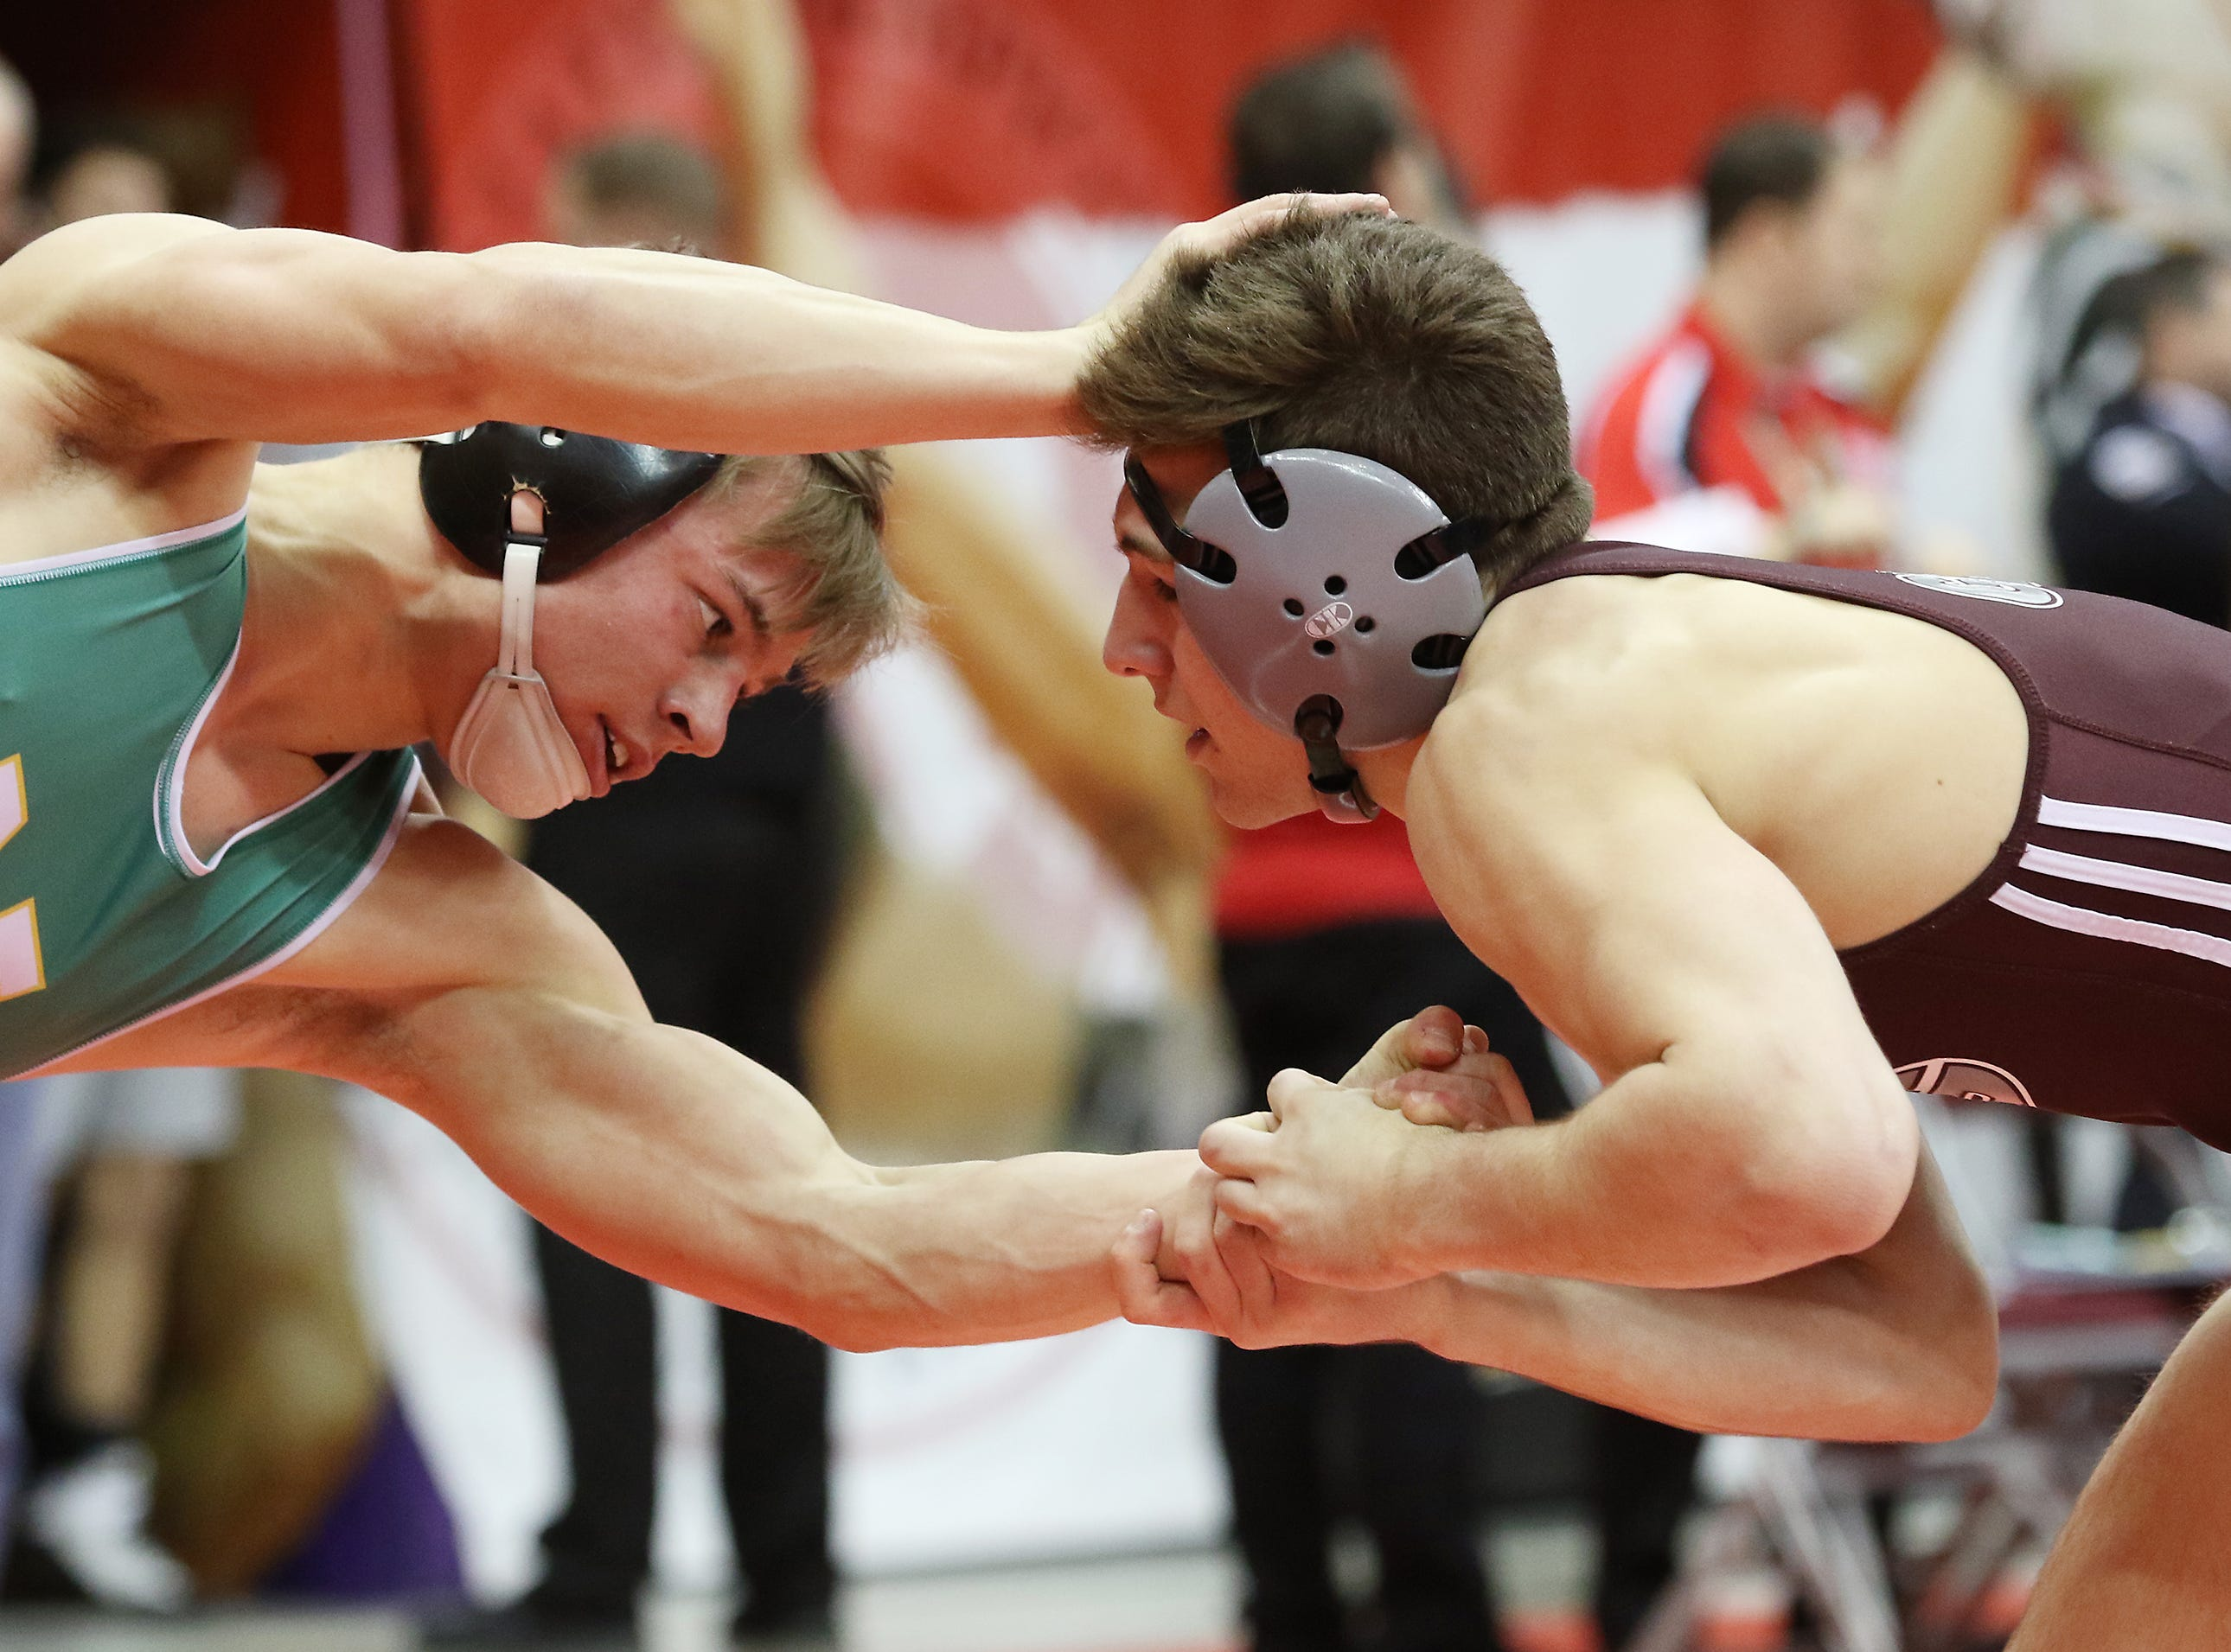 Newark Catholic's J.T. Brown wrestles Genoa's Dylan D'Emilio in the 138 pound weight class at the Division III state wrestling tournament on Friday.